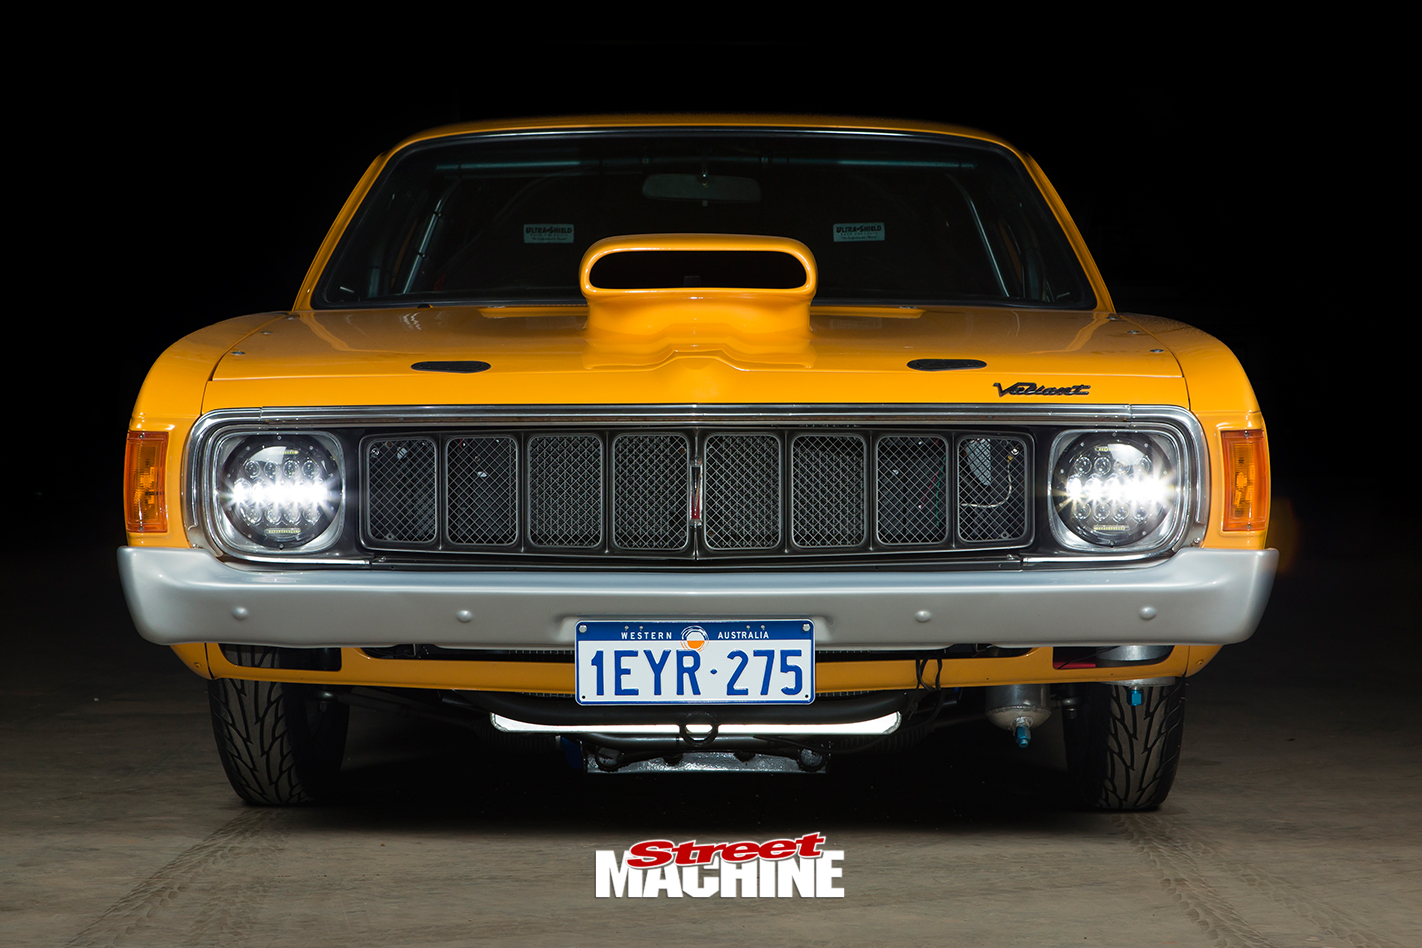 Chrysler -valiant -e 55-charger -front -view